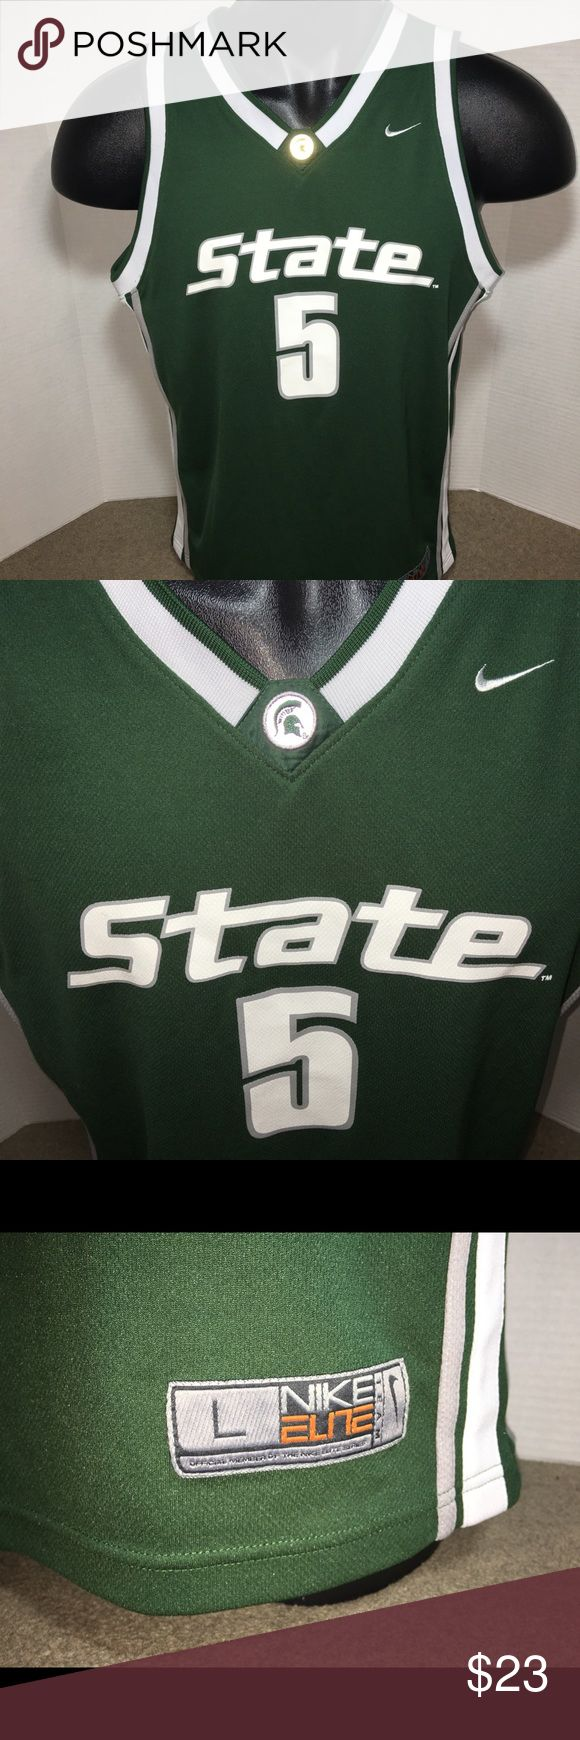 Nike Michigan State Spartans Basketball Jersey LG Excellent condition. Printed numbers, letters and logos. Nike Elite Michigan State Spartans Basketball Jersey. Men's Size Large. Home Jersey. Nike Other